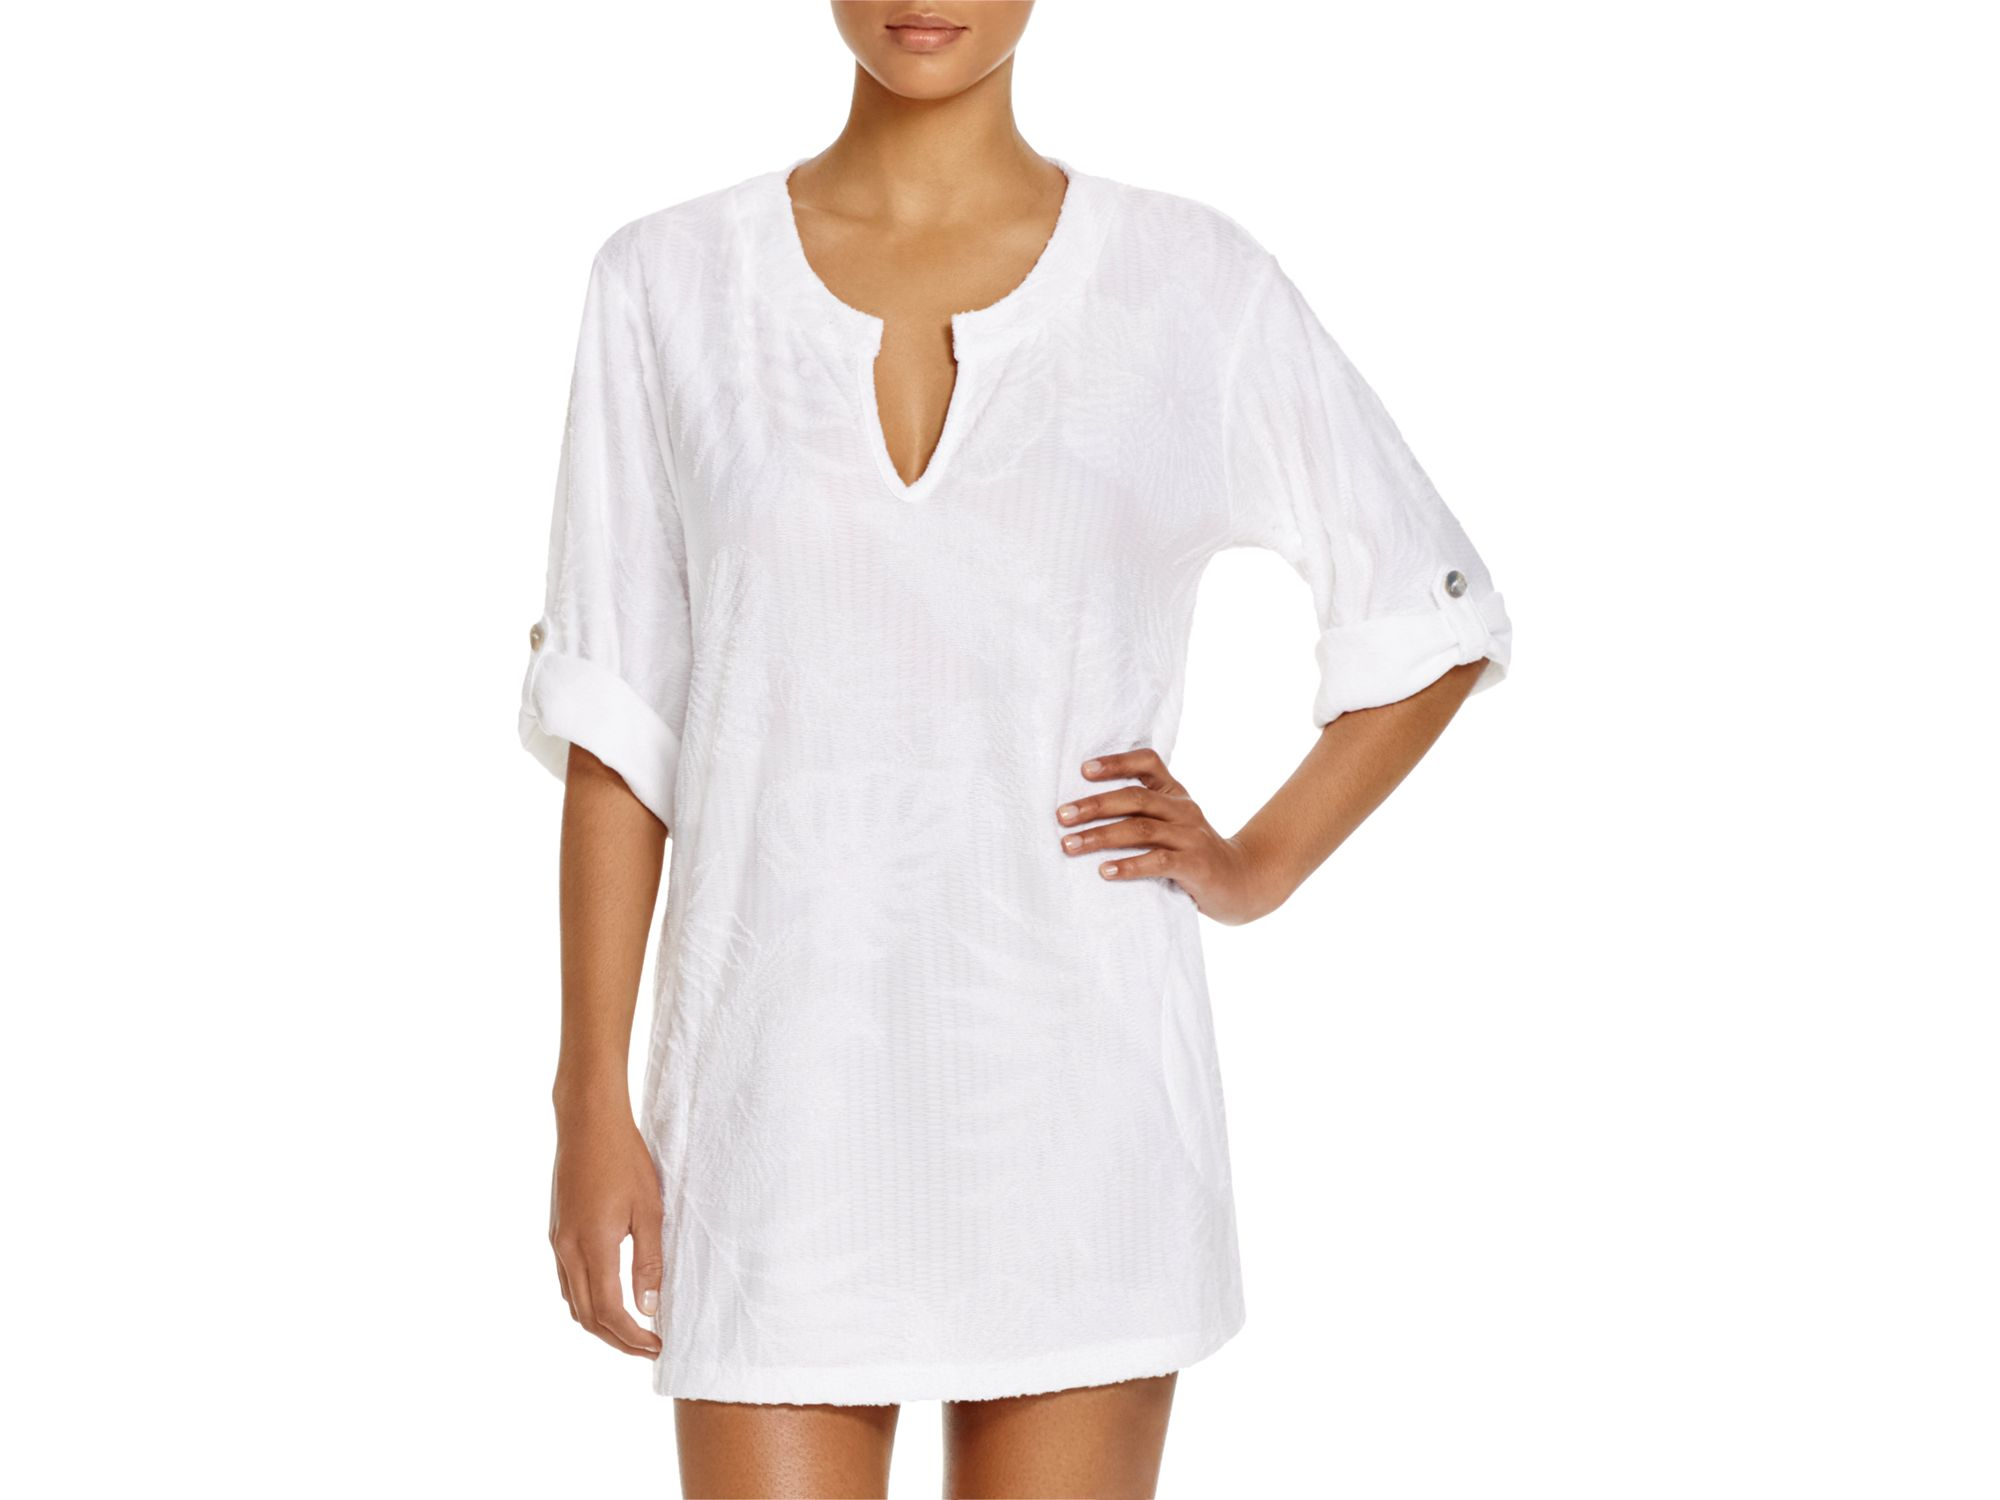 984f2c2208 J Valdi Tropical Terry Tunic Swim Cover Up in White - Lyst